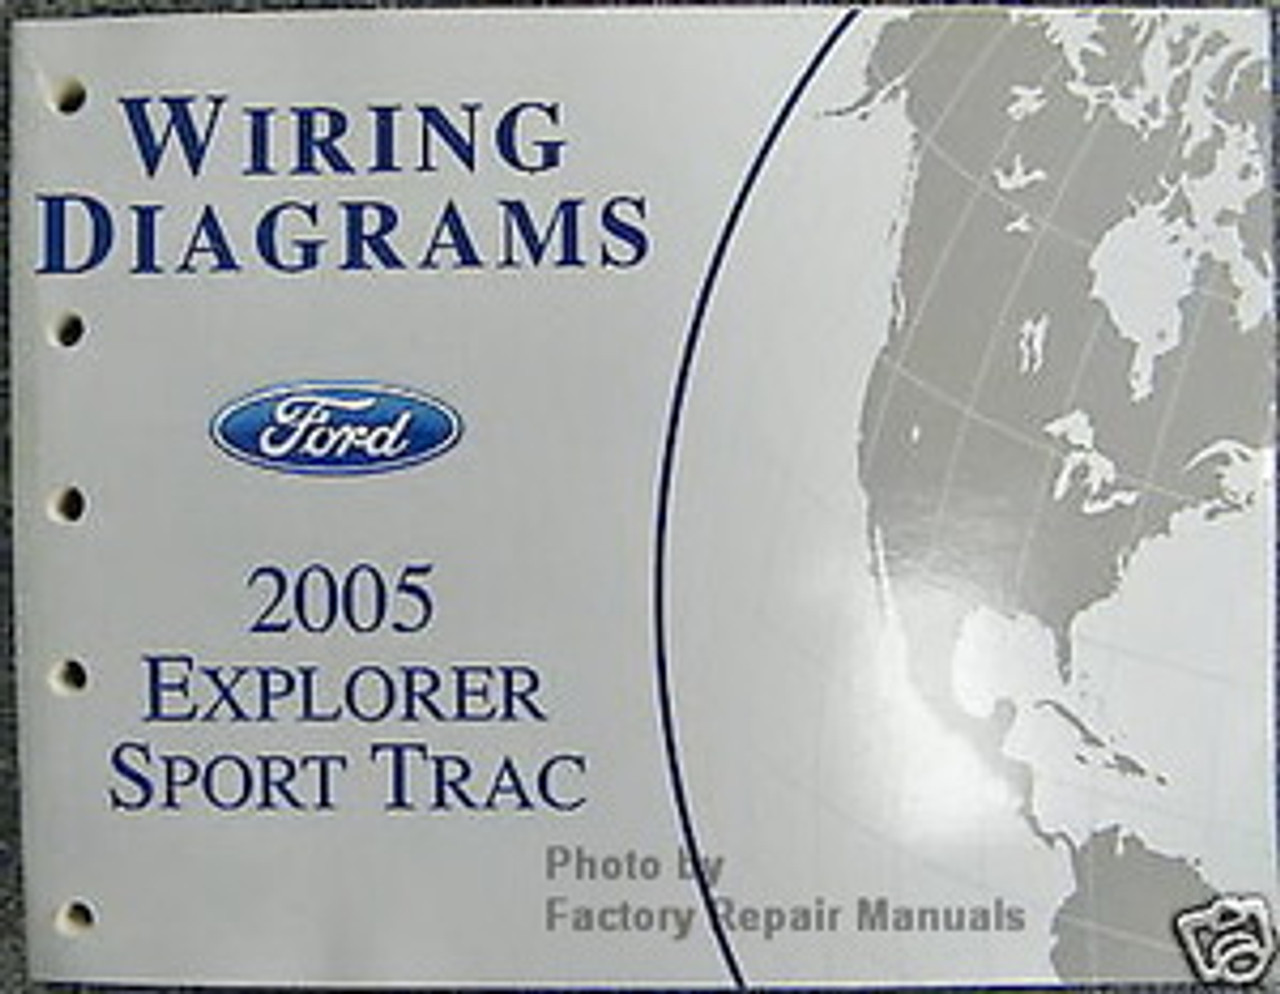 ford explorer wire diagram 2005 ford explorer sport trac electrical wiring diagrams original ford explorer wiring diagram free 2005 ford explorer sport trac